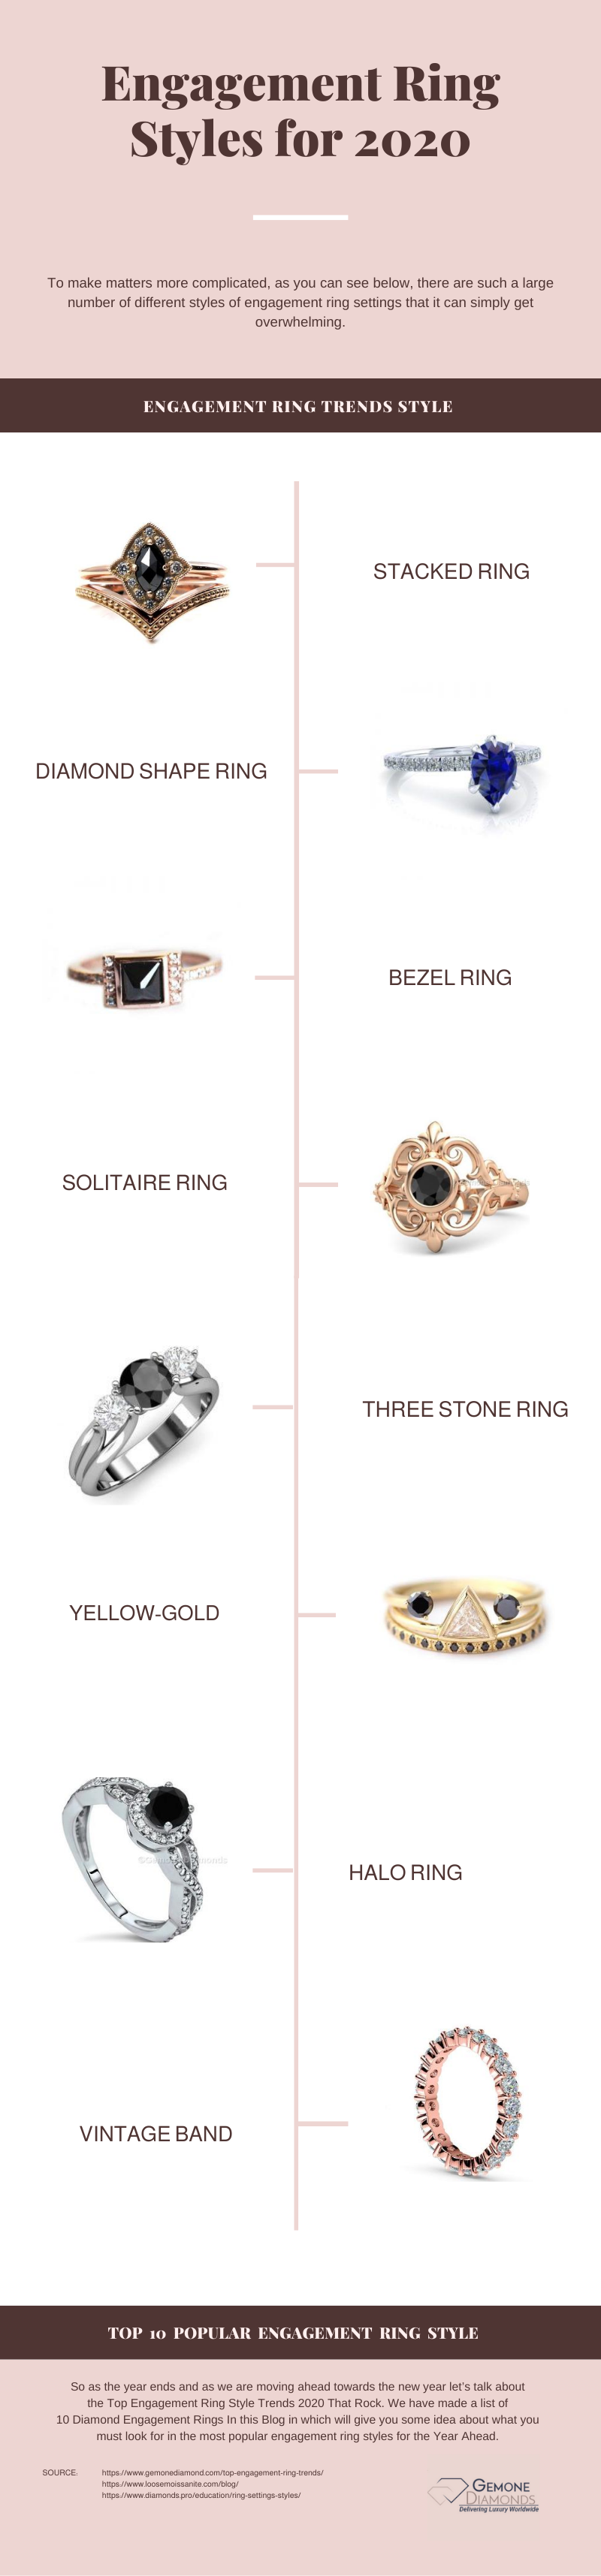 Engagement Rings Trends 2020